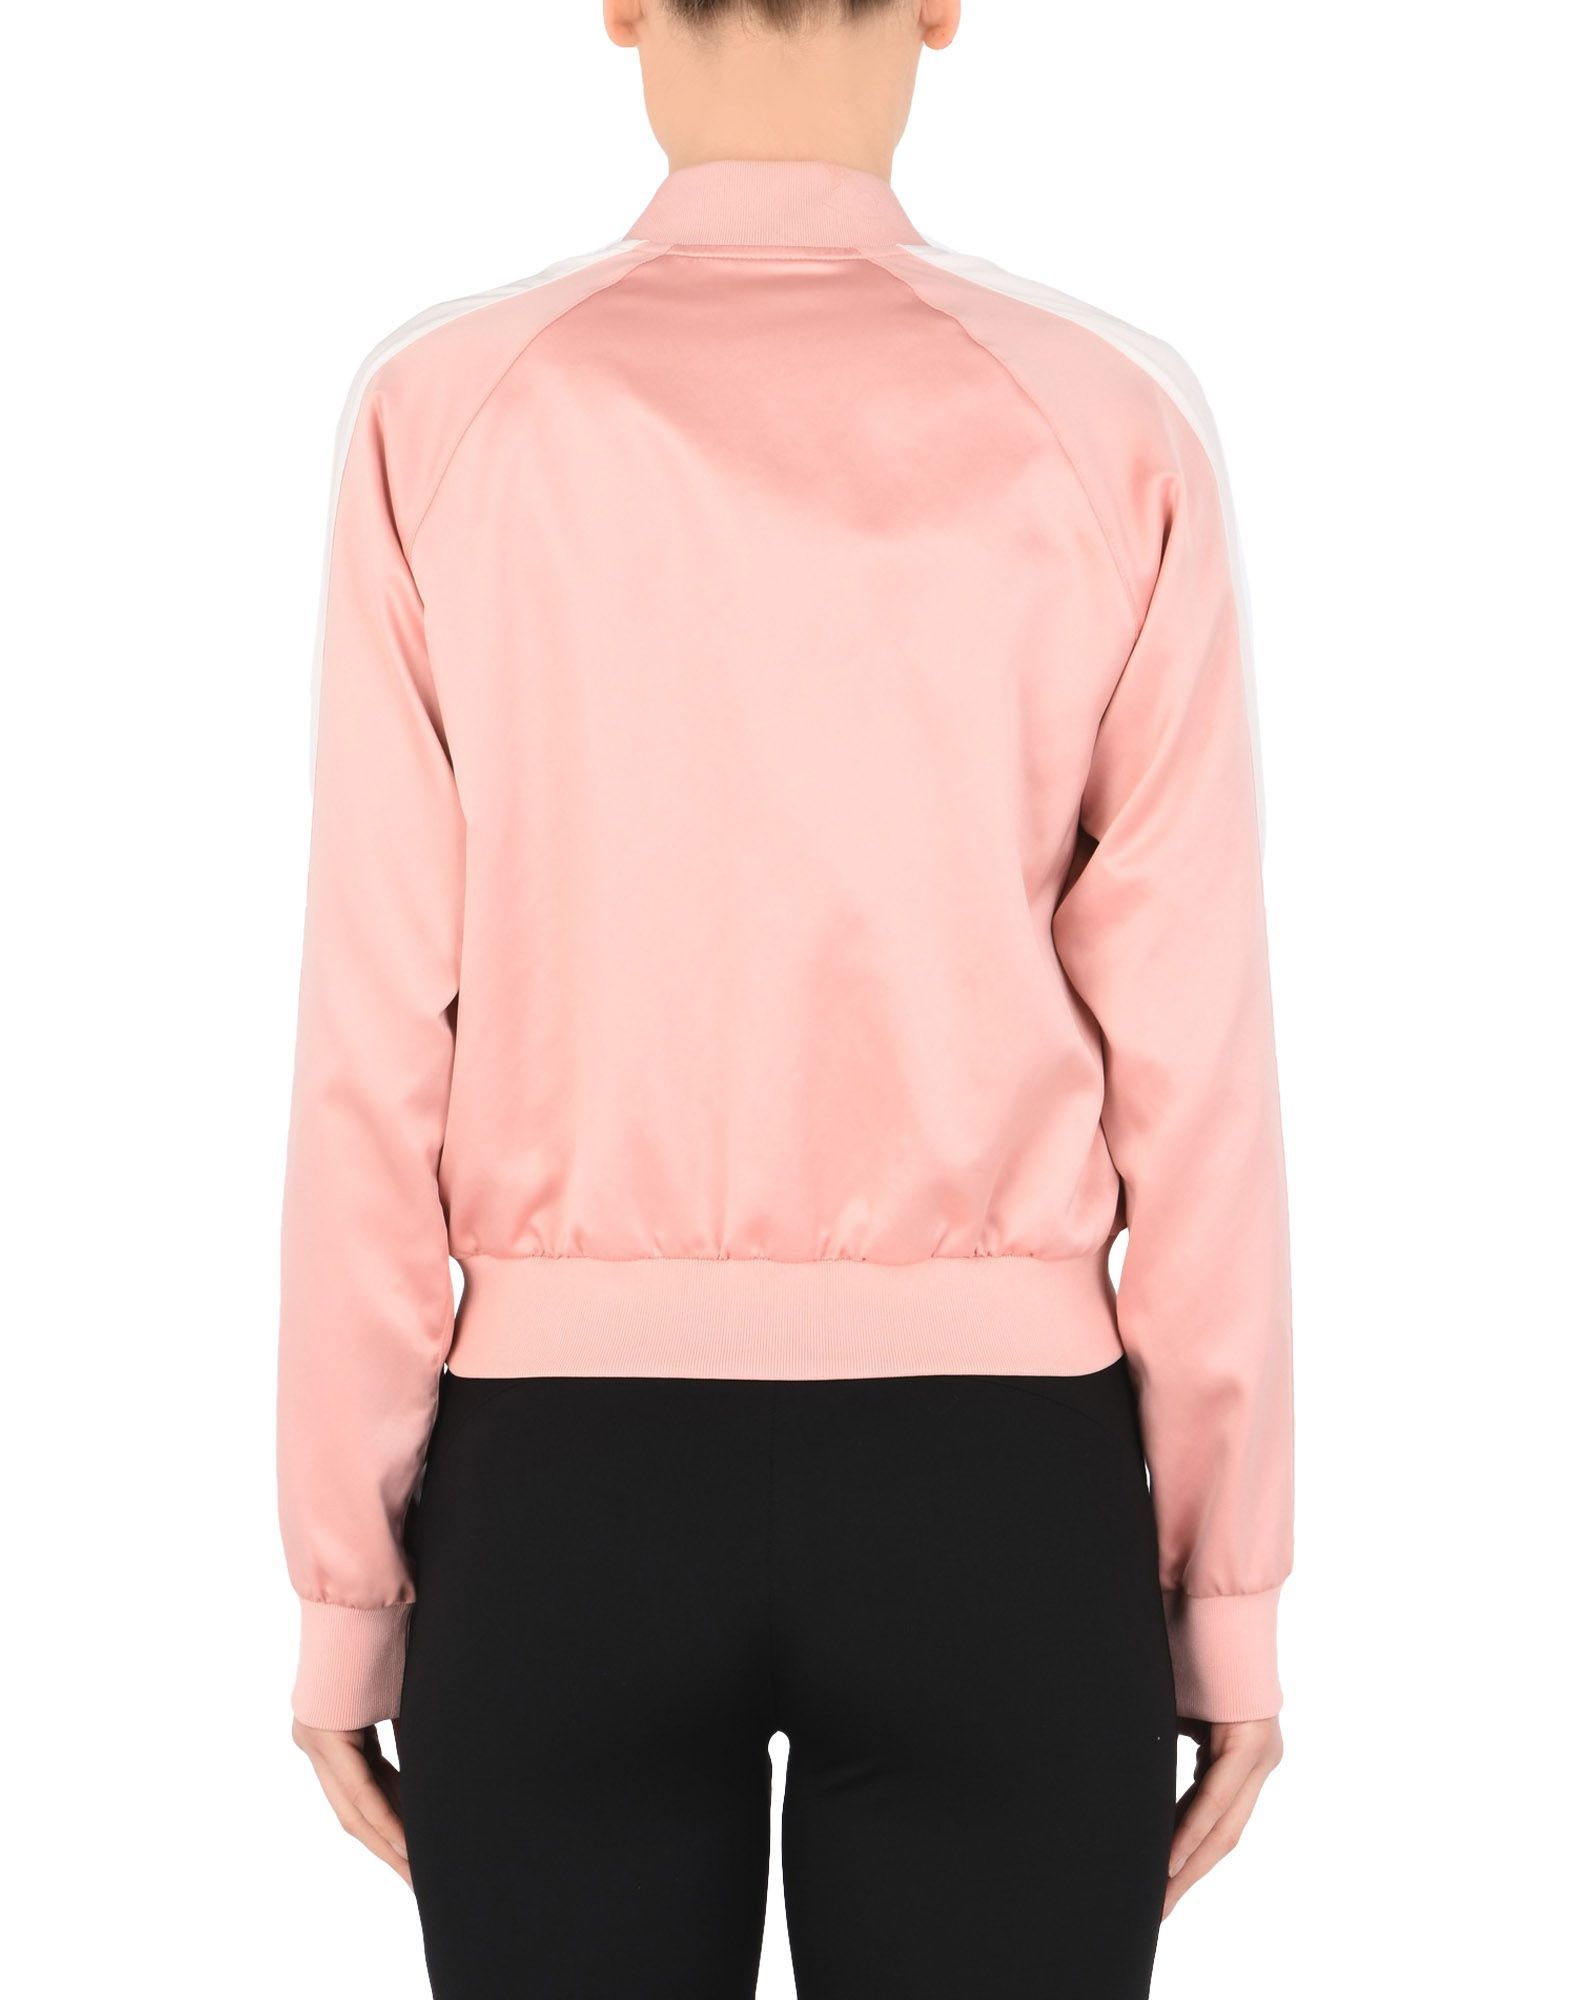 Puma Light Pink Satin Bomber Jacket